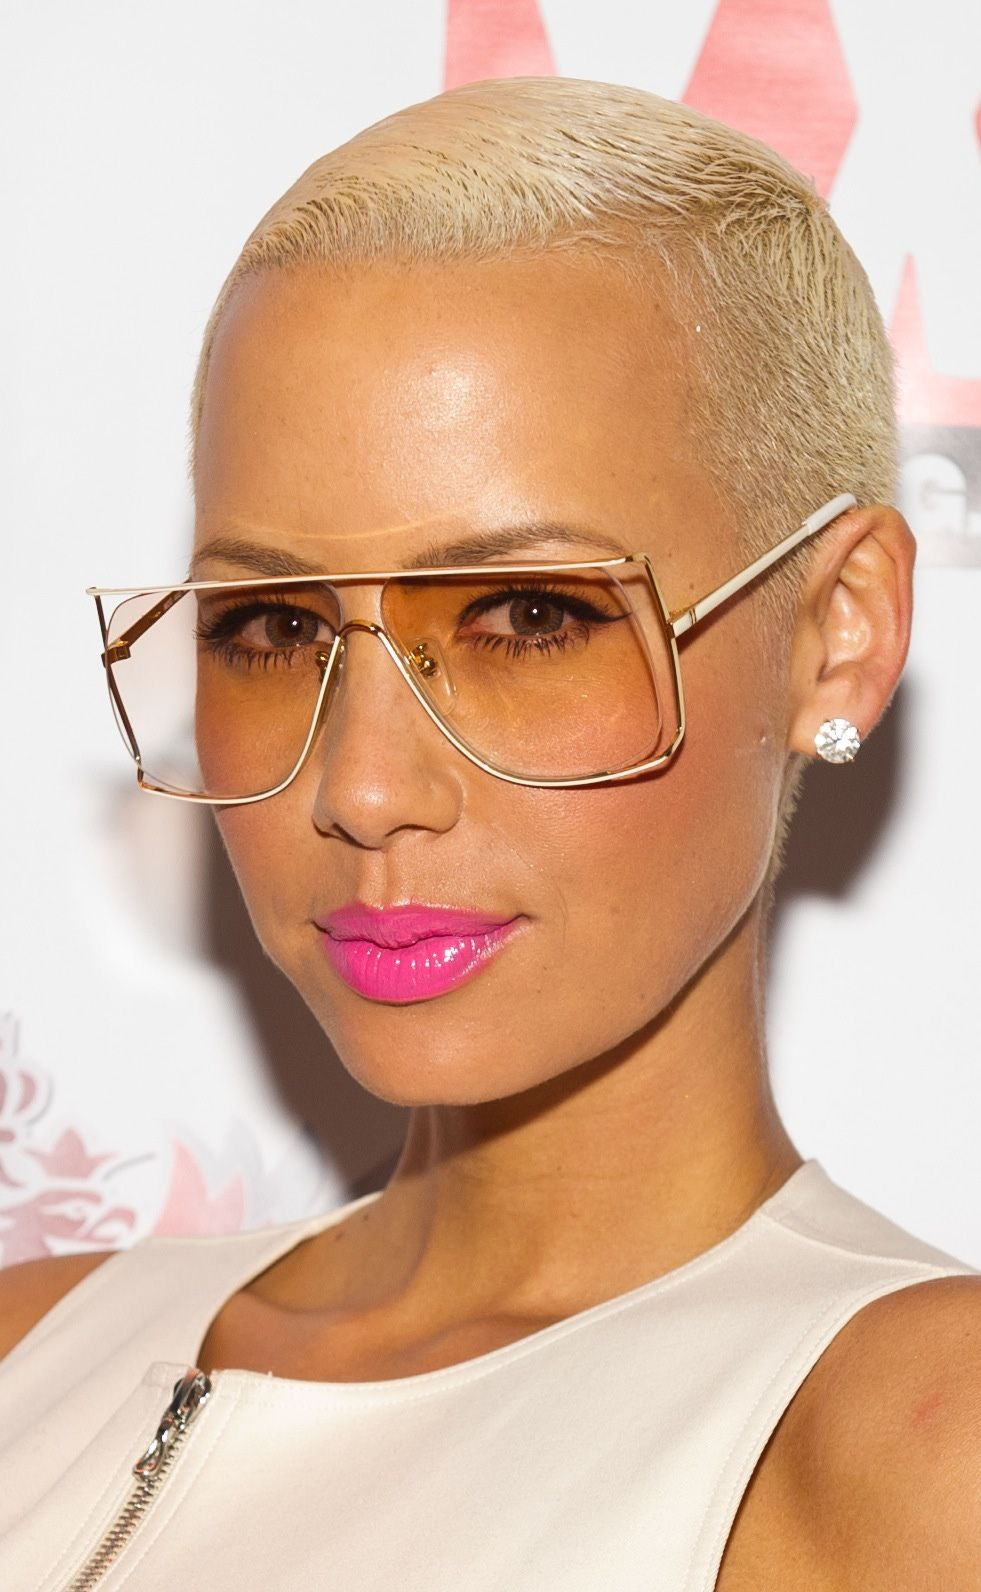 Pin by Noel H on Cancer Amber rose, Rose makeup, Glasses